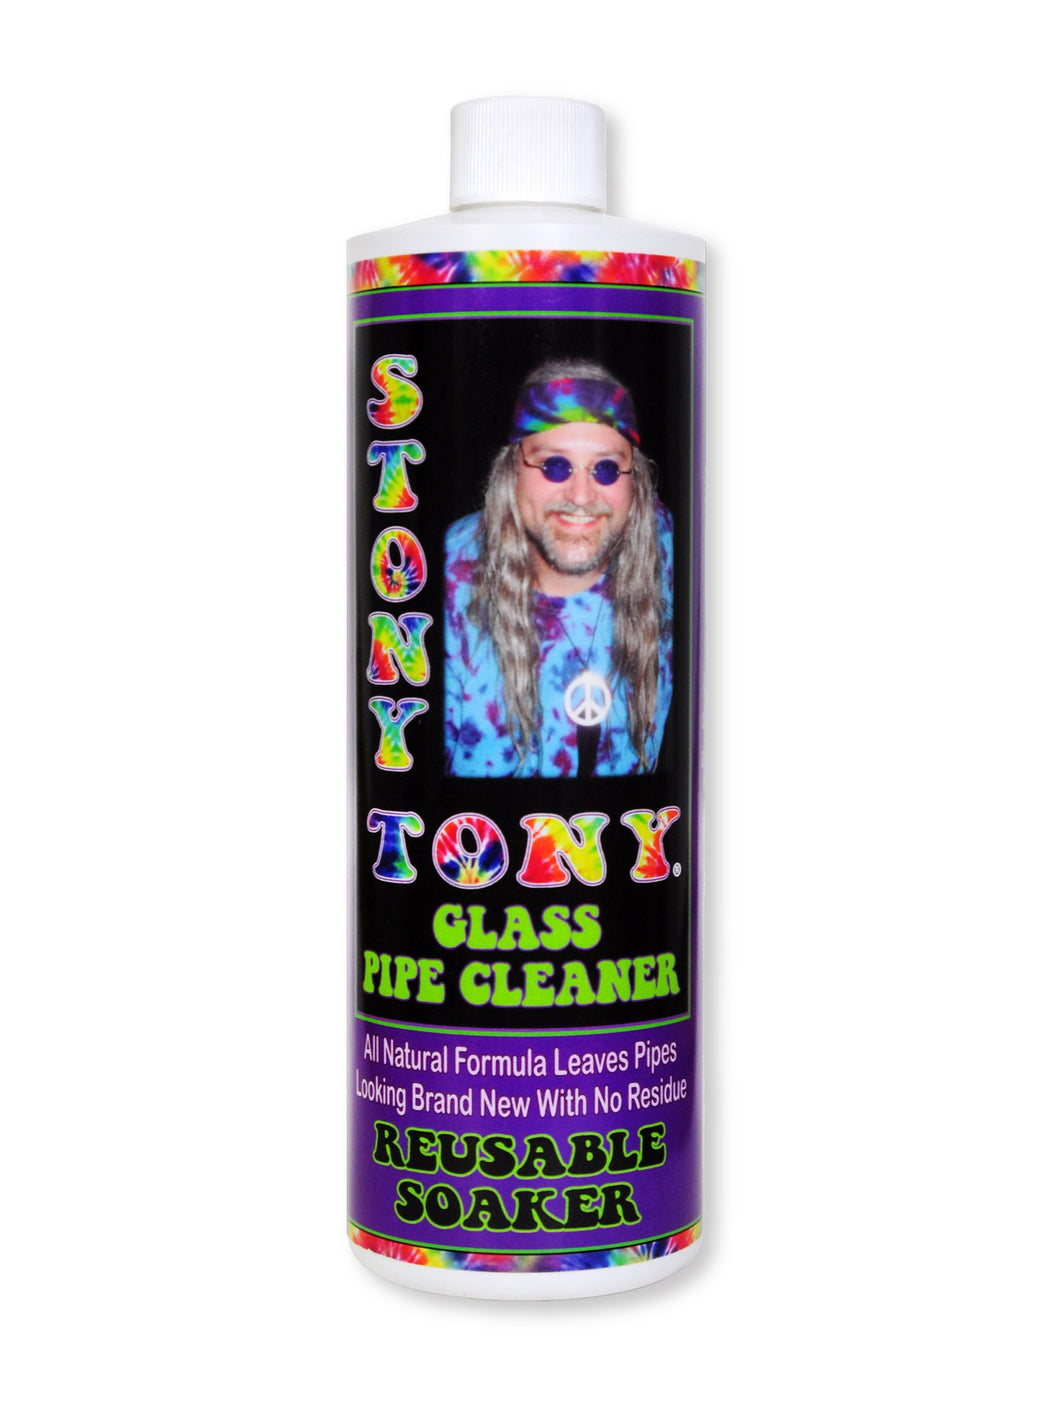 Stony Tony Cleaner 8oz